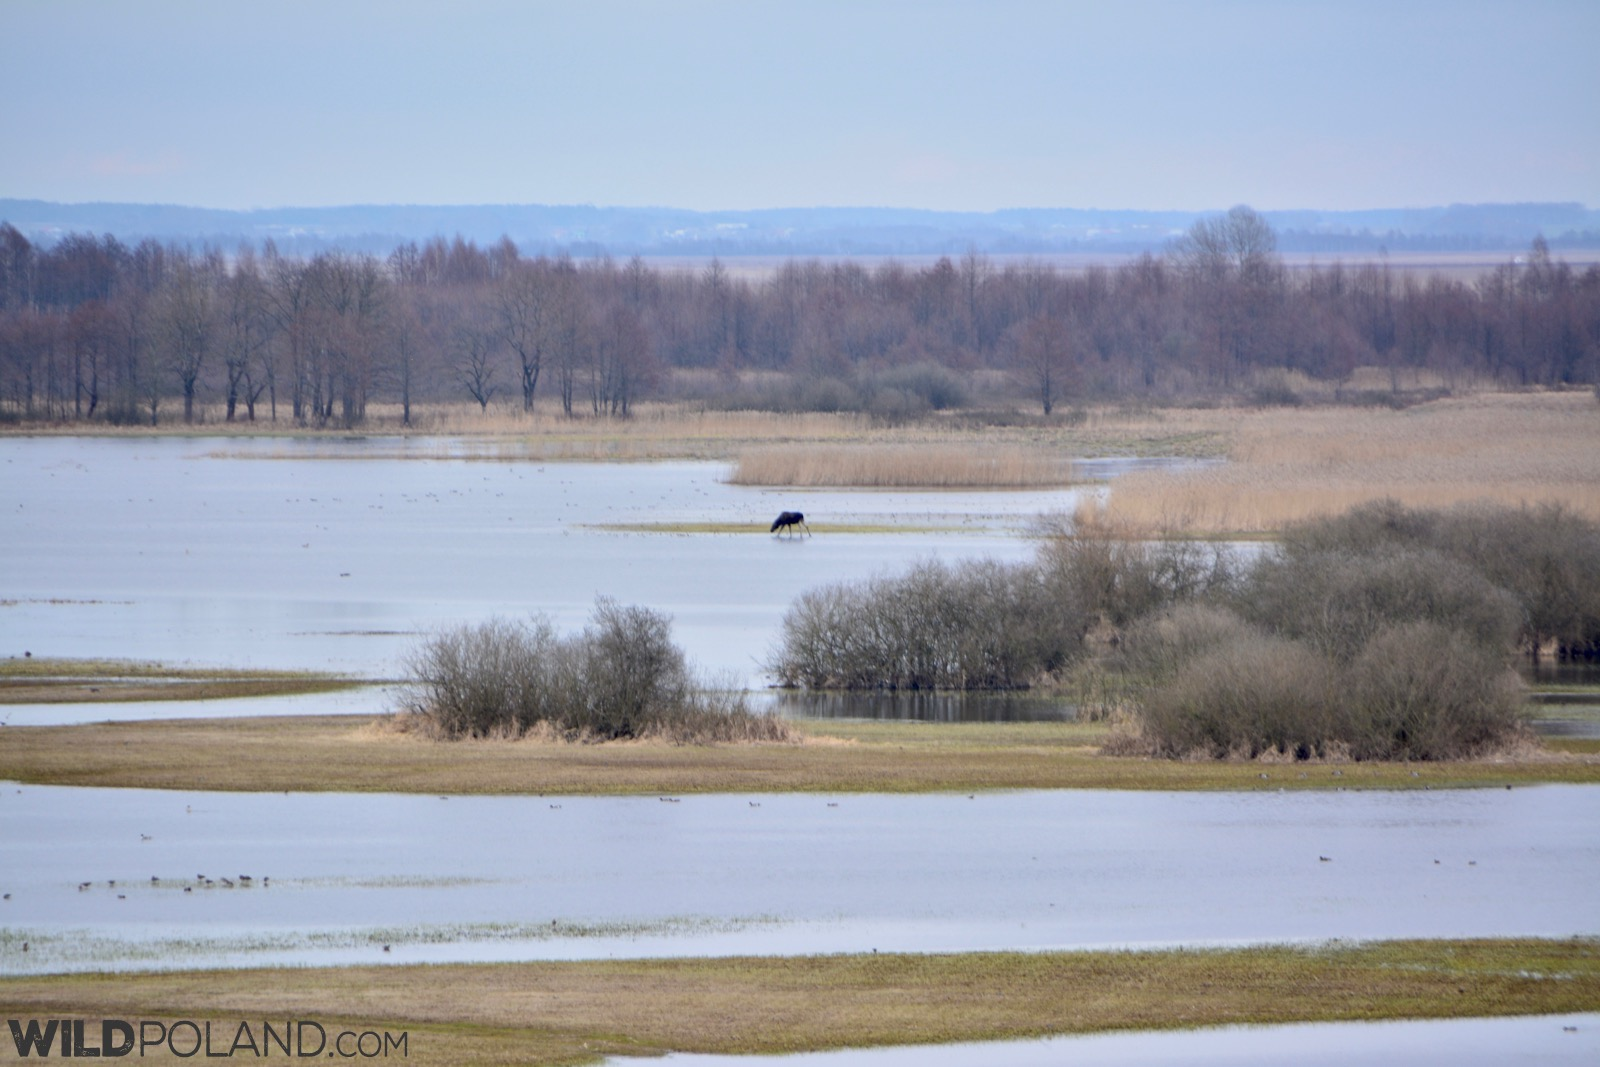 Elk (Moose) at the Biebrza Marshes, photo by Michał Skierczyński